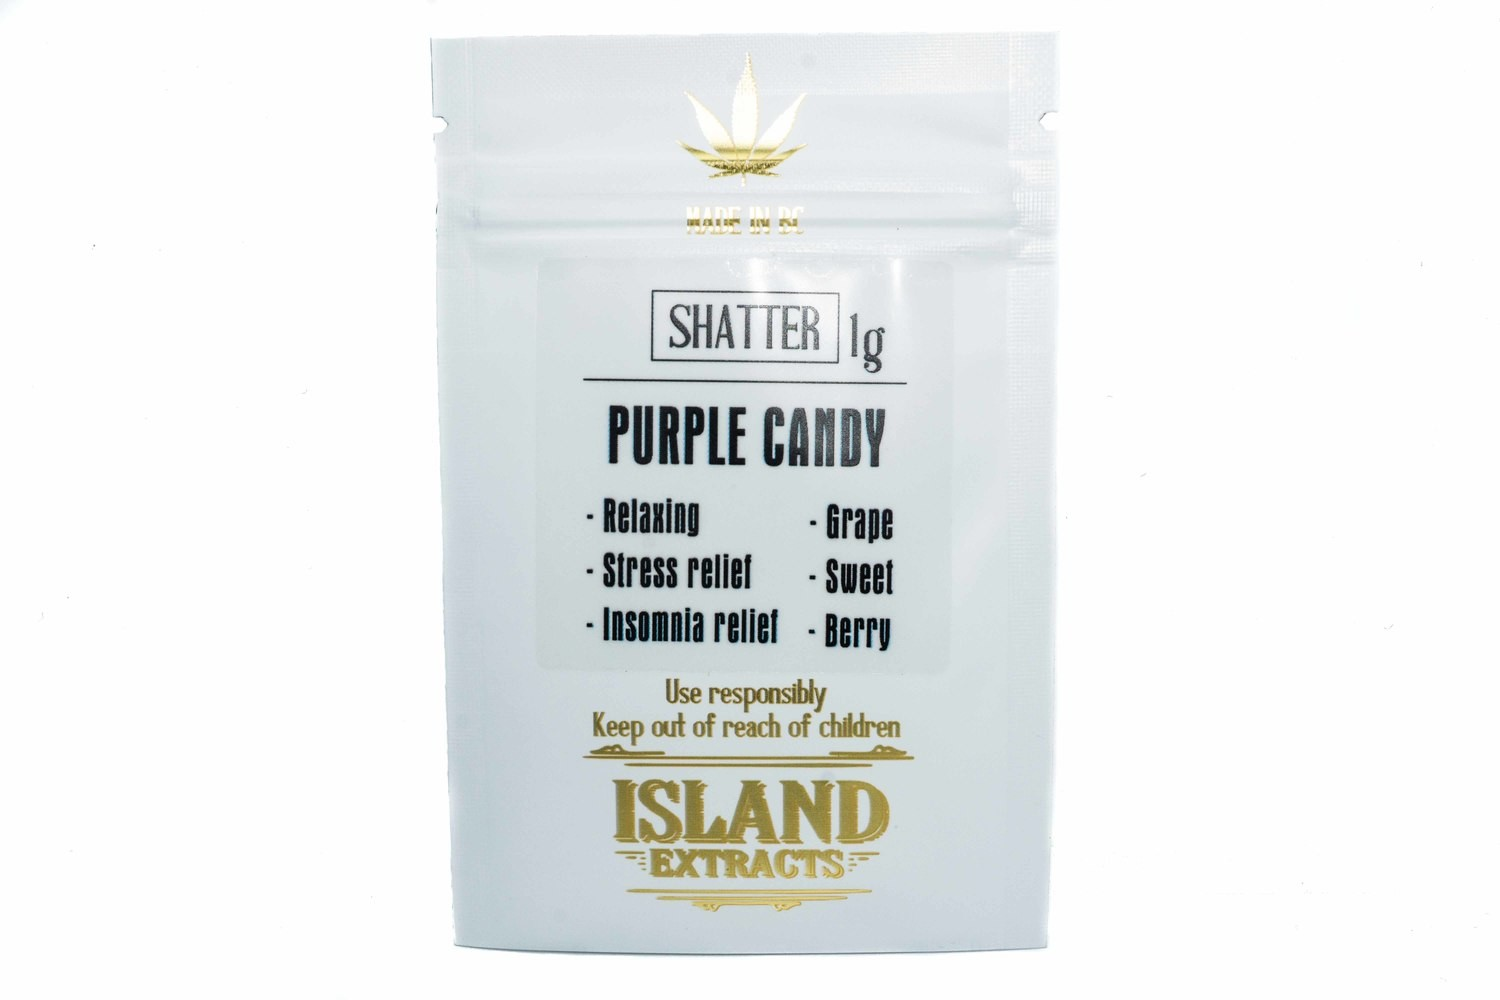 Purple Candy Shatter (1g) by Island Extracts